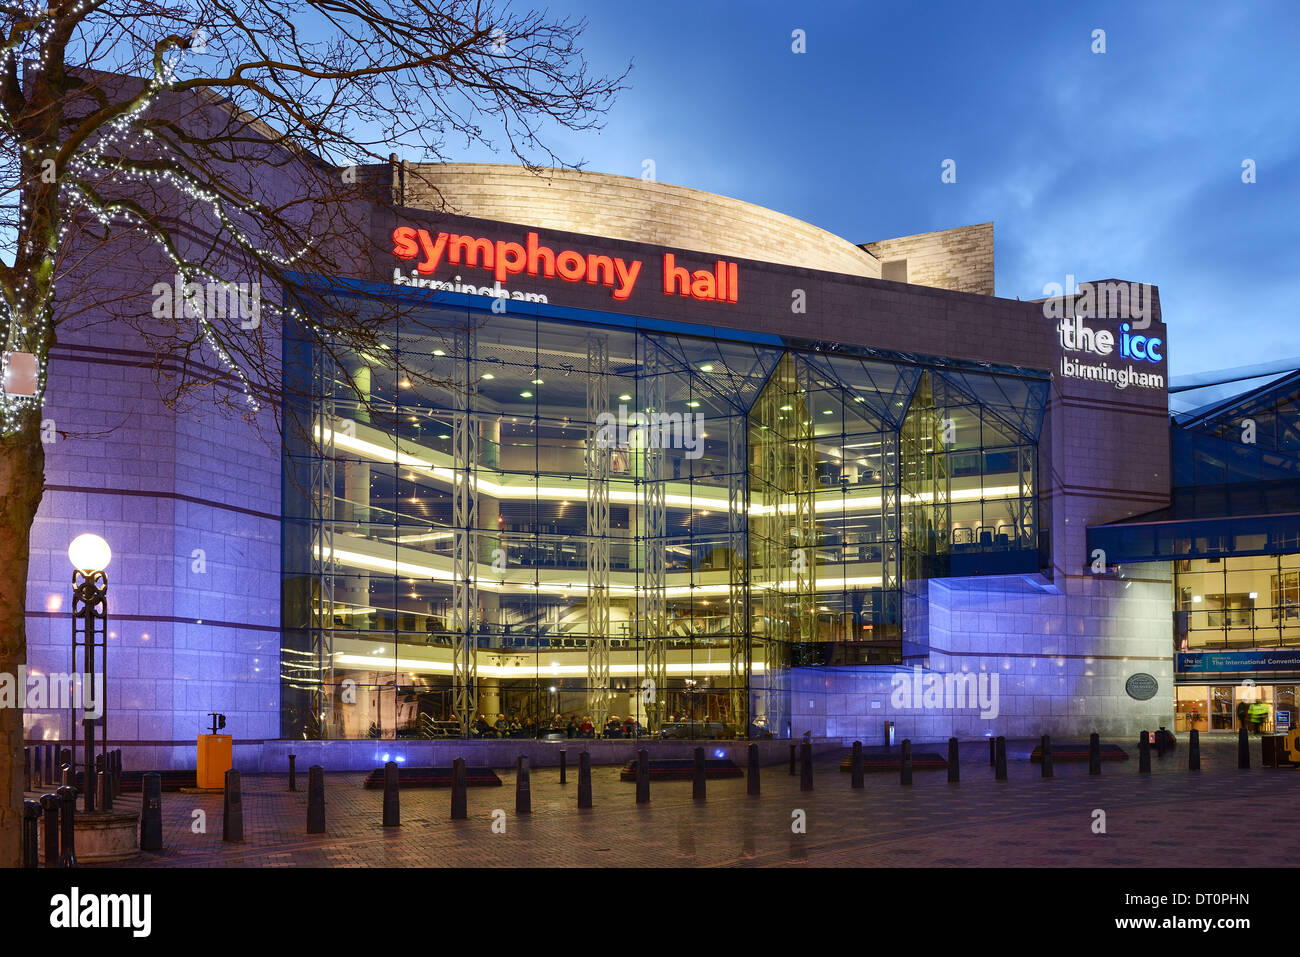 The Symphony Hall and ICC in Centenary Square Birmingham - Stock Image